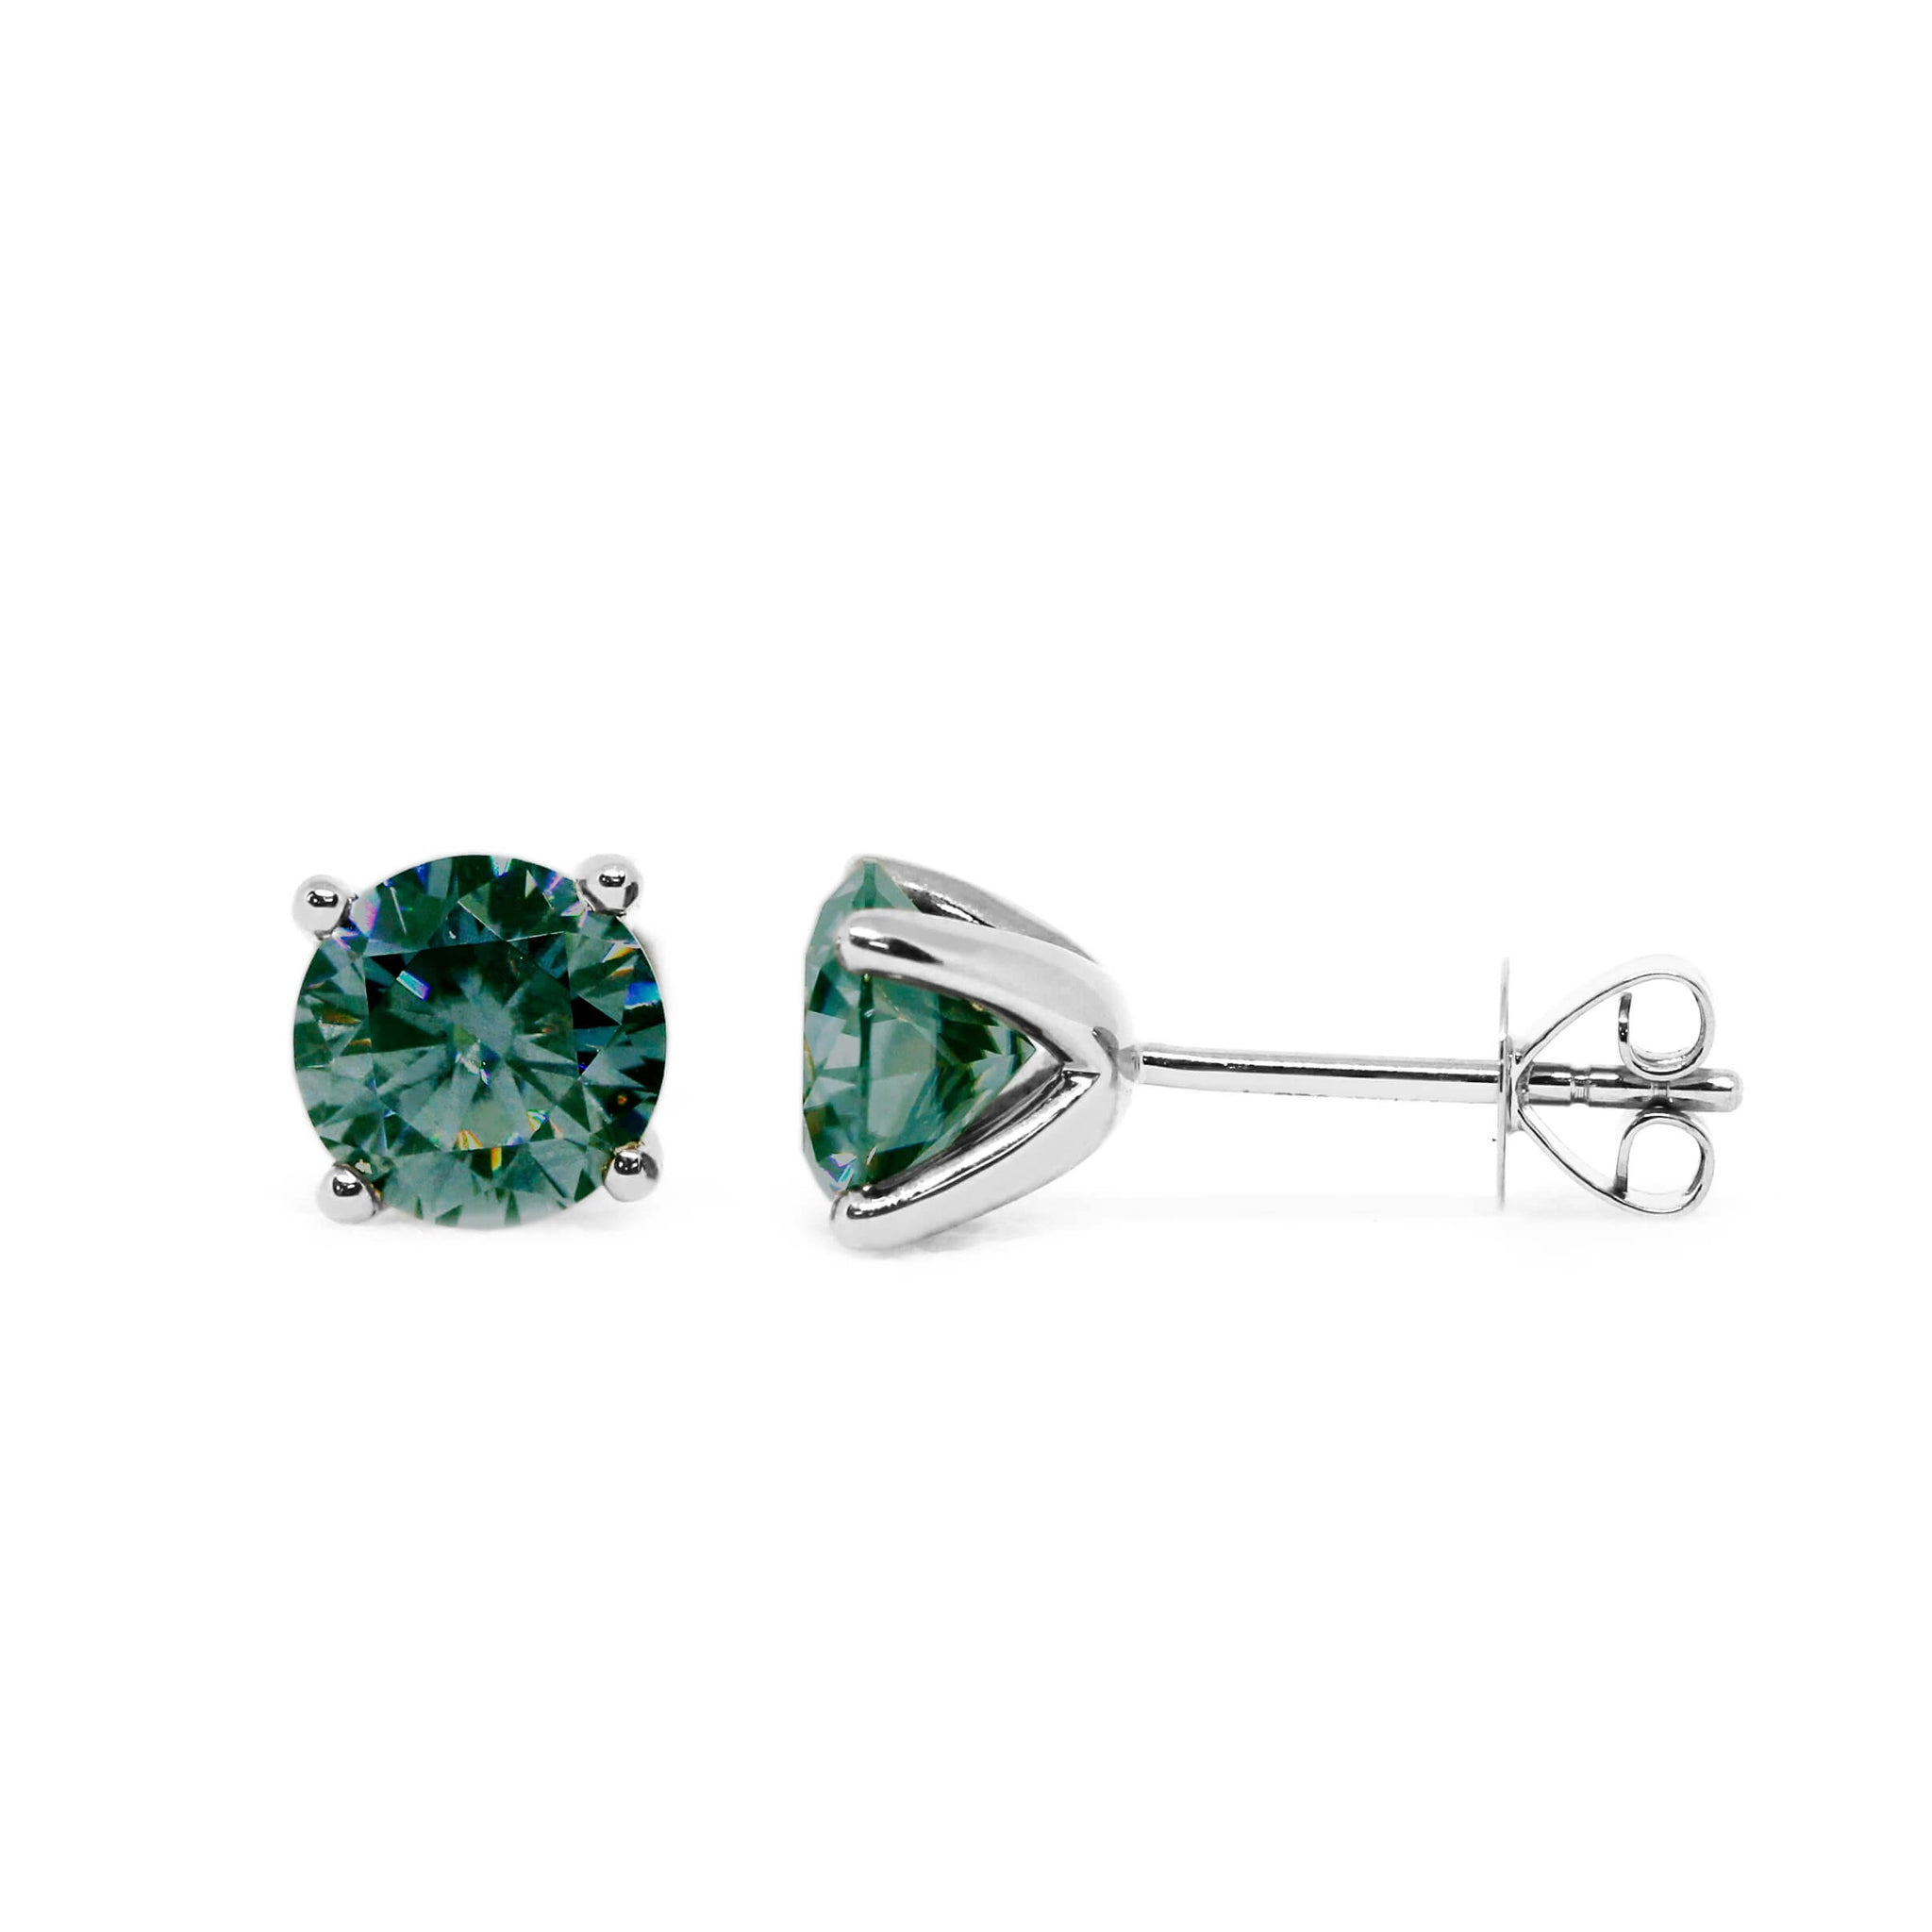 Dark Green Moissanite Solitaire 18K White Gold Stud Earrings